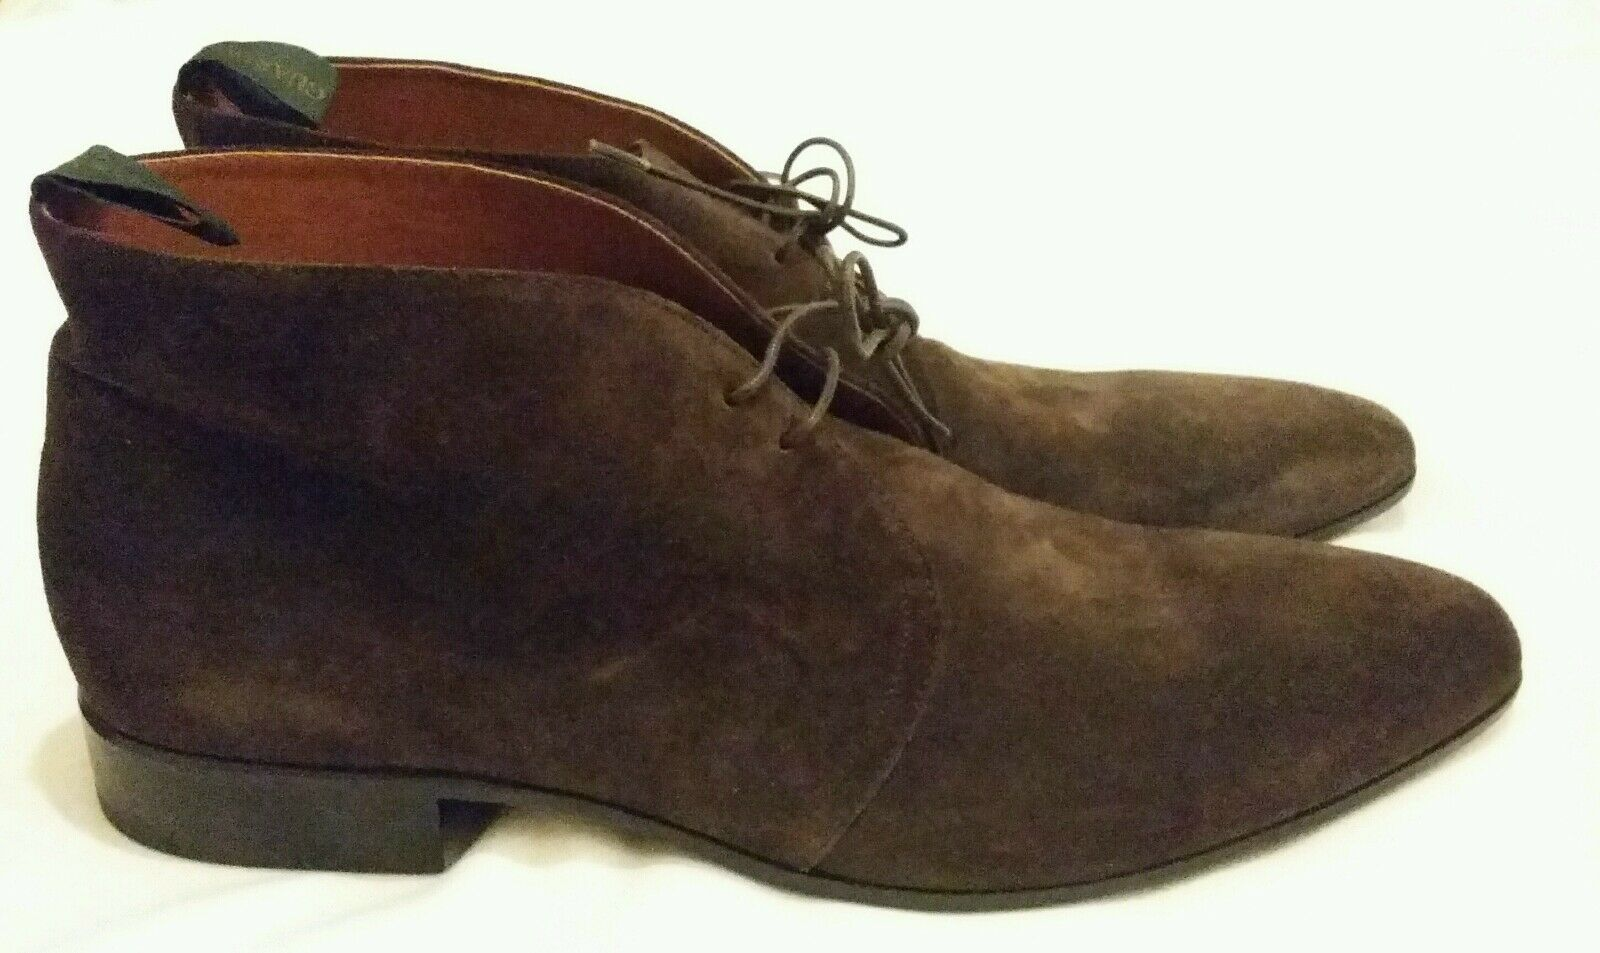 ALBERTO GUARDIANI SUEDE LACE-UP ANKLE schuhe braun Größe uk 10, eu 44